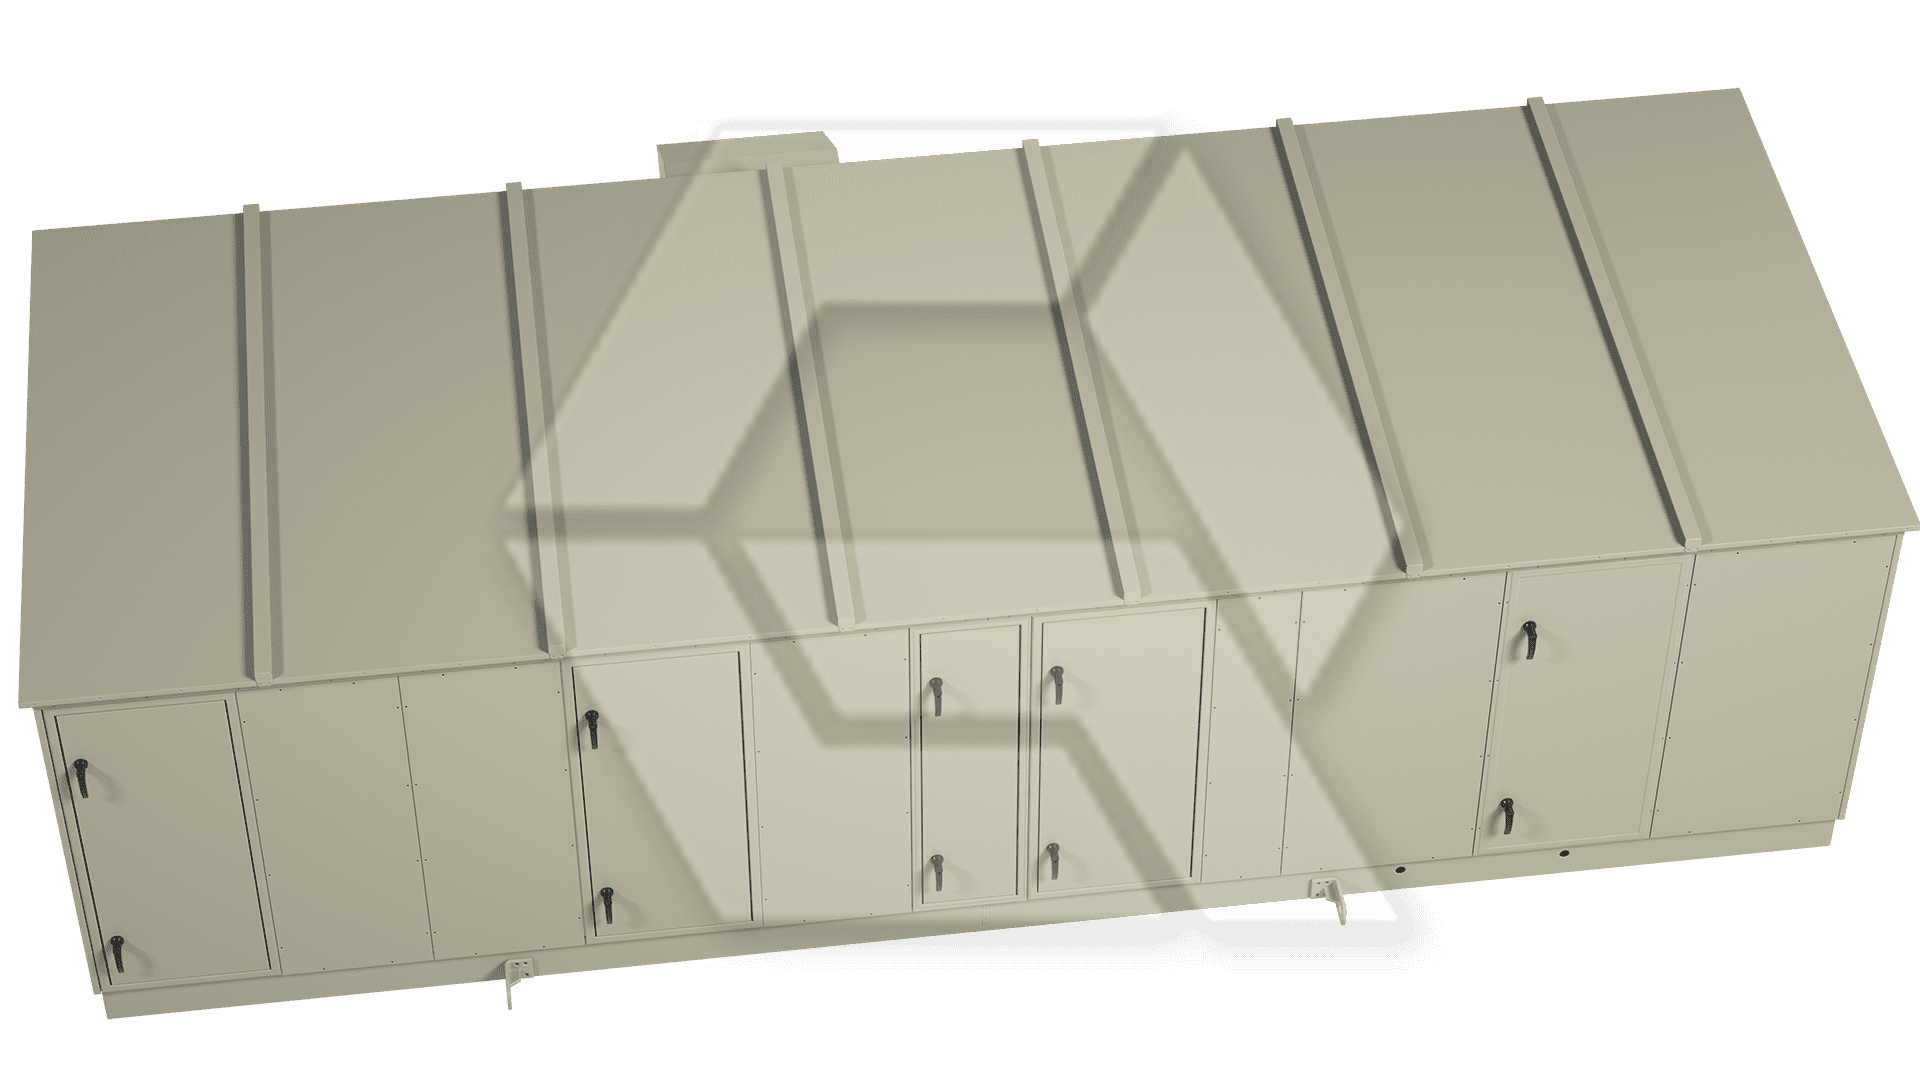 Innovent AHU 7825073-00020 - LASER I Closed View